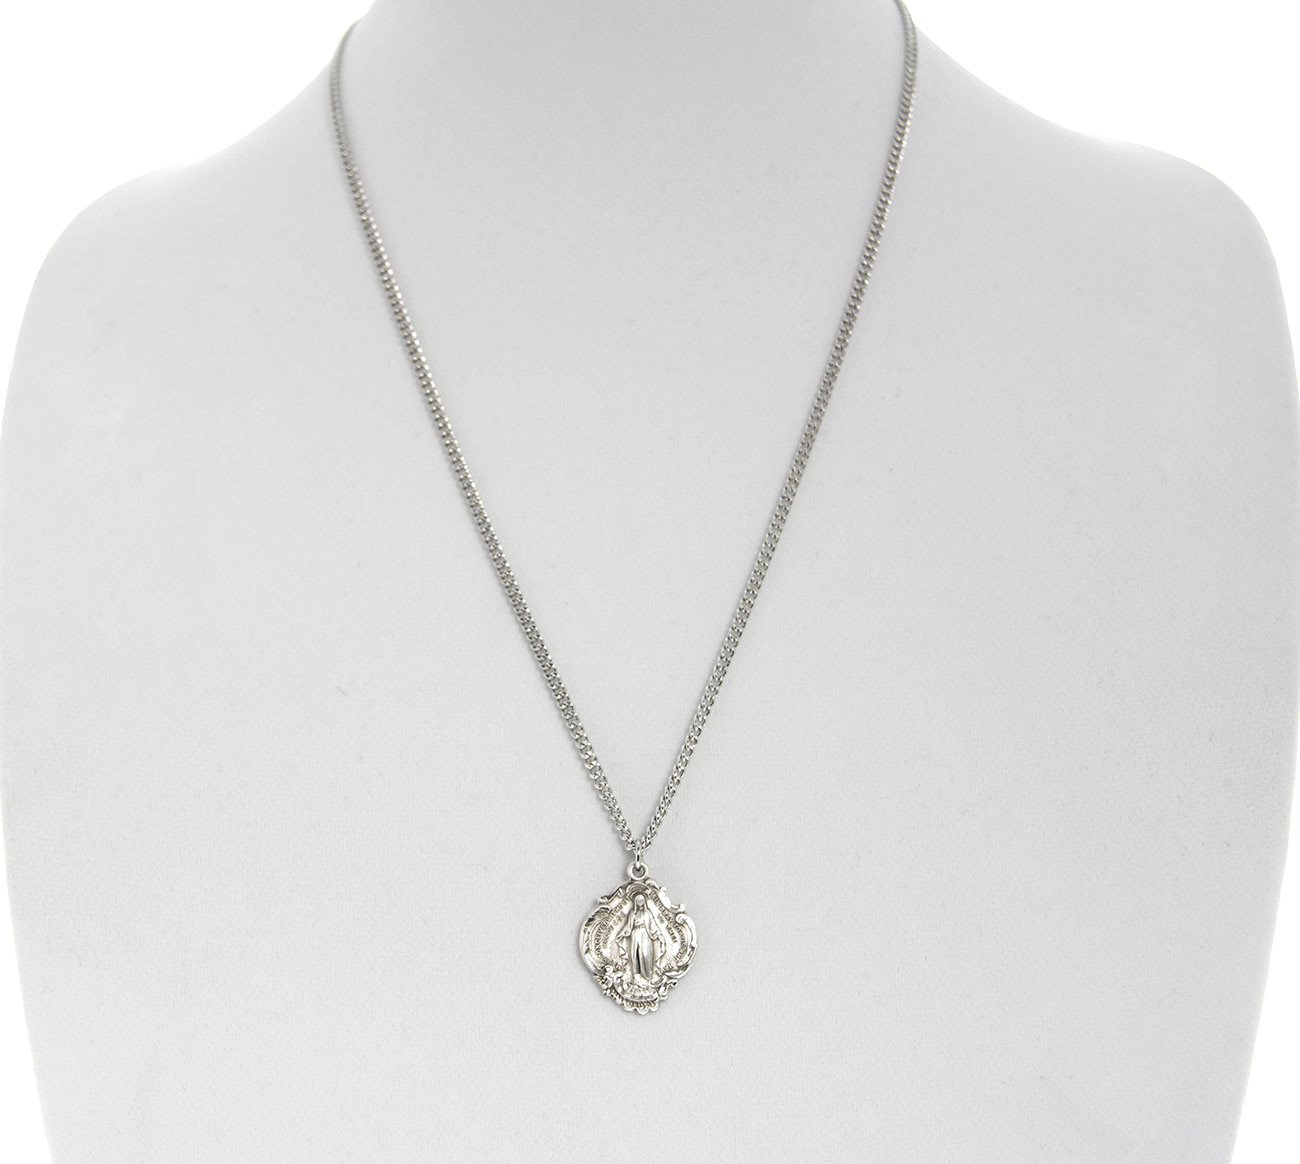 Hail Mary Prayer Sterling Silver Pendant + 24 Inch Sterling Silver Chain with Clasp by Heartland Store (Image #4)